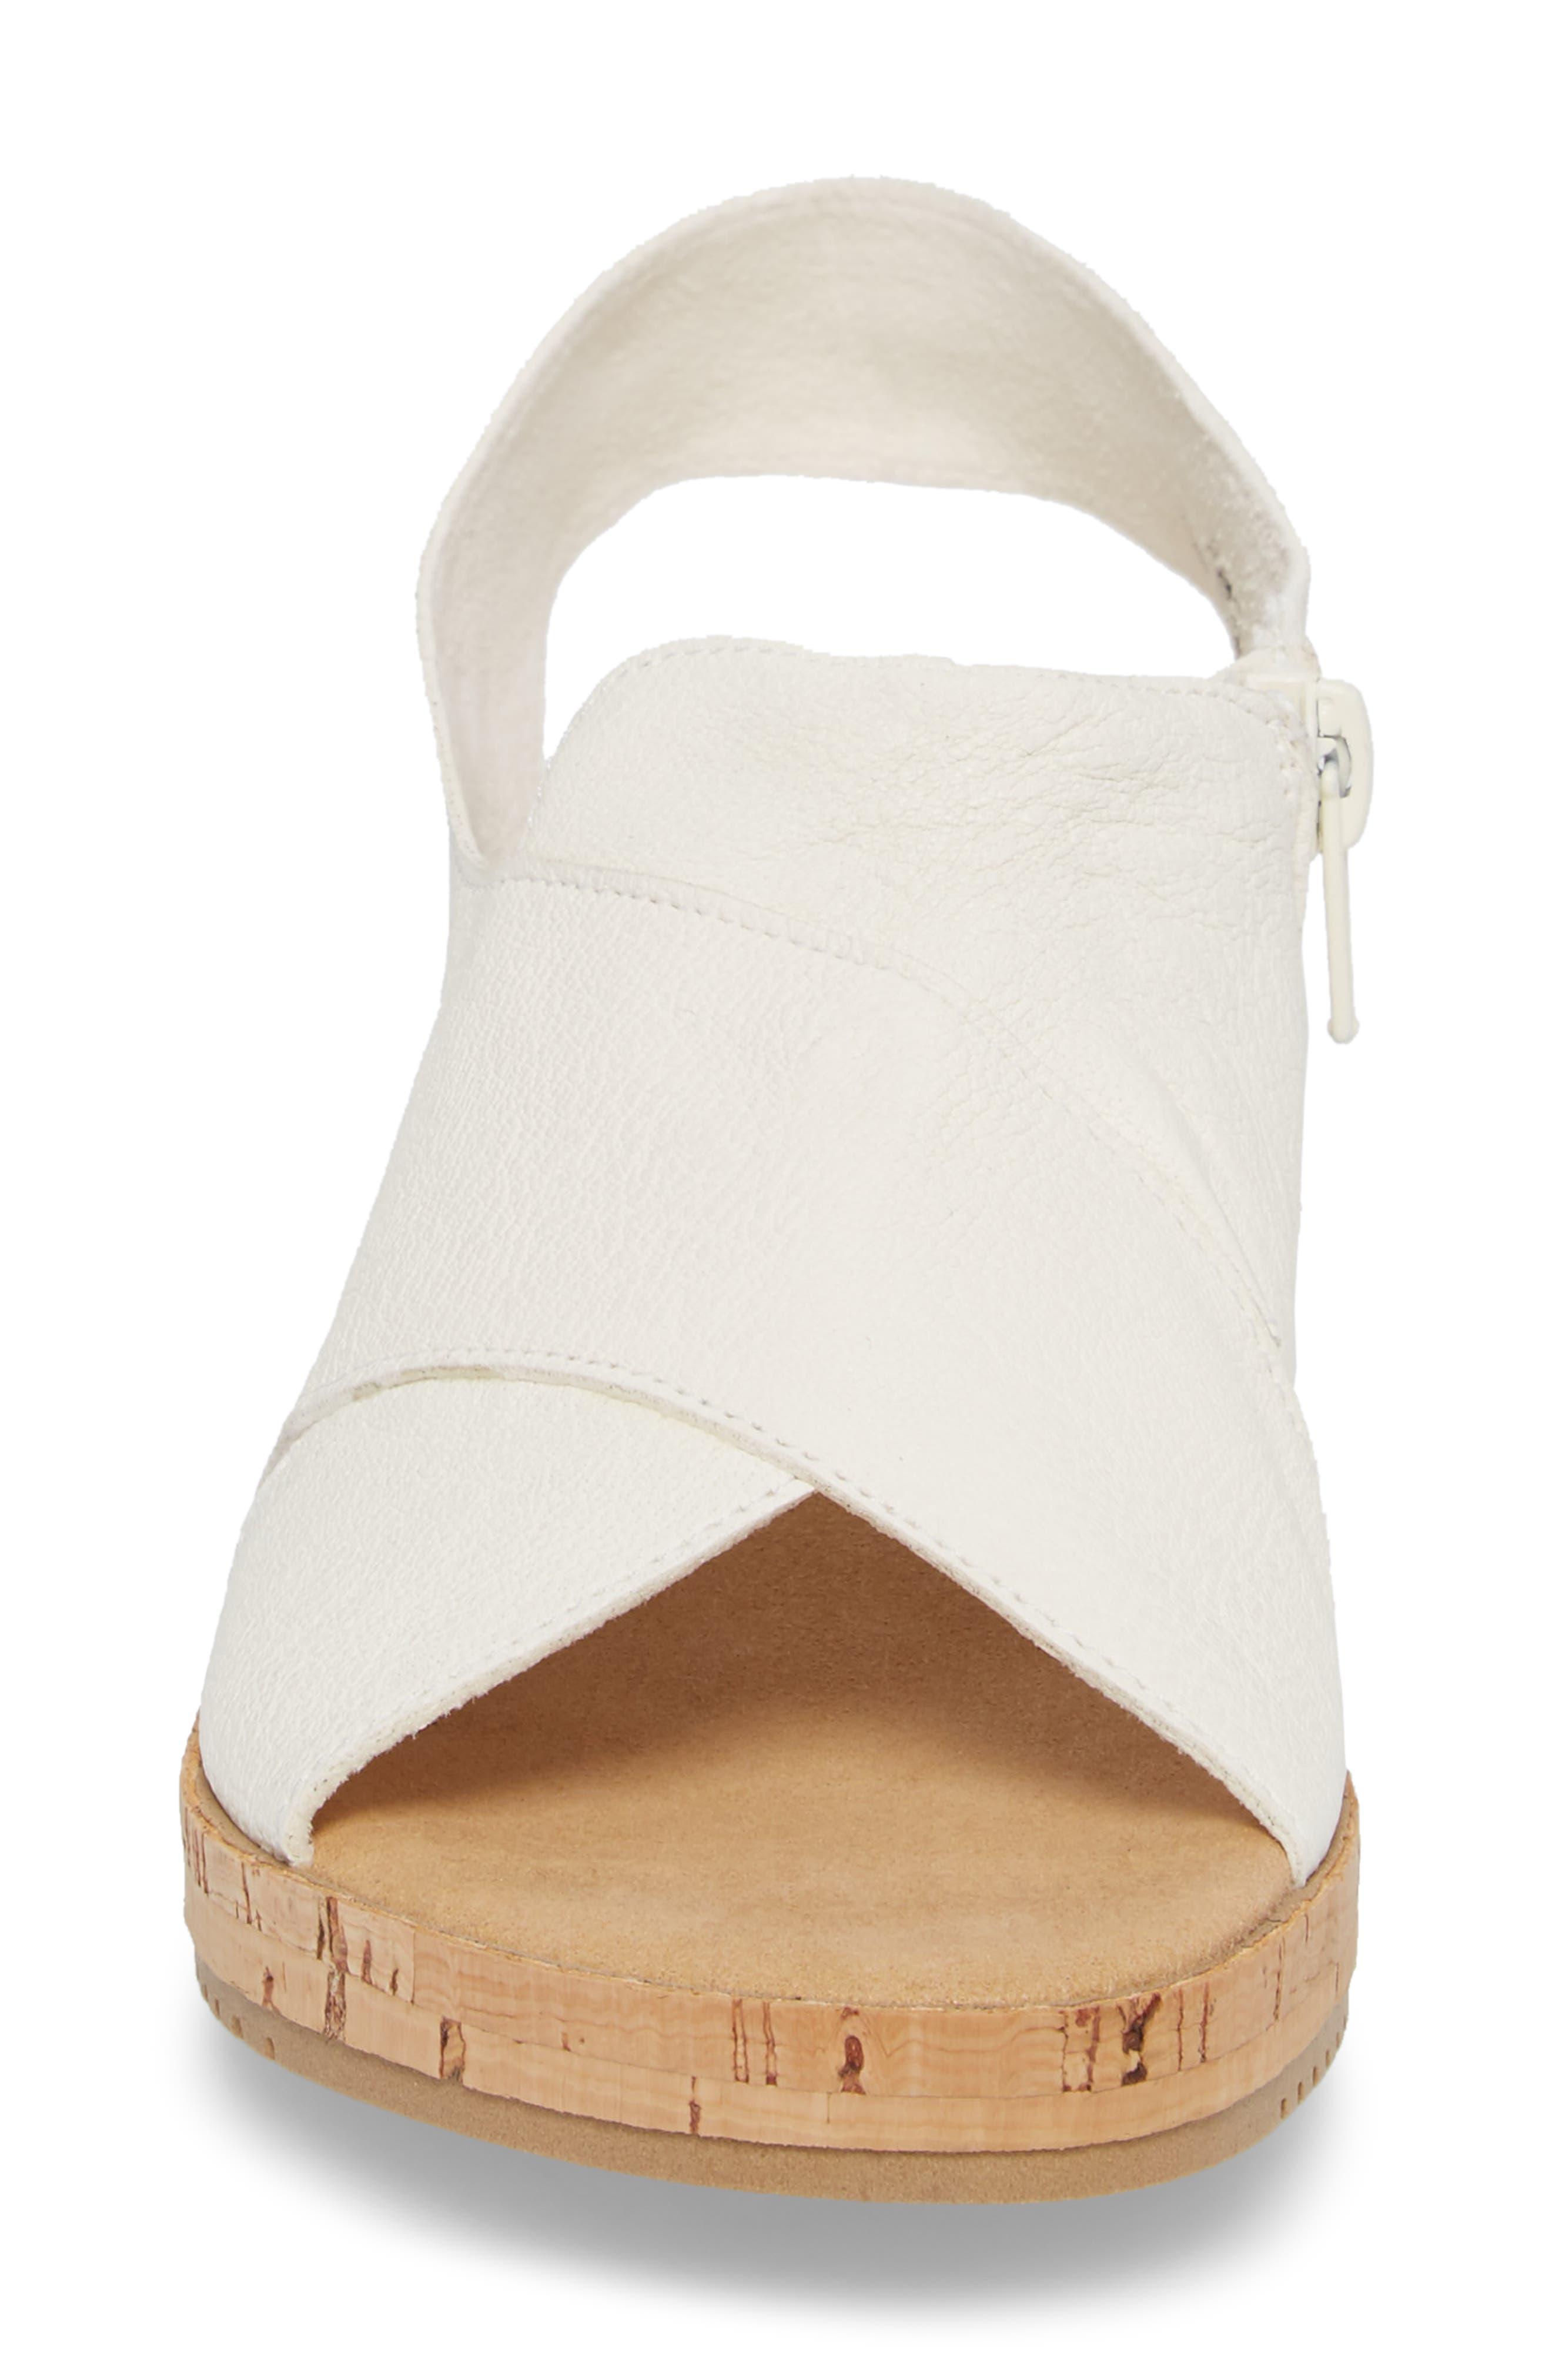 Sylke Sandal,                             Alternate thumbnail 4, color,                             WHITE LEATHER